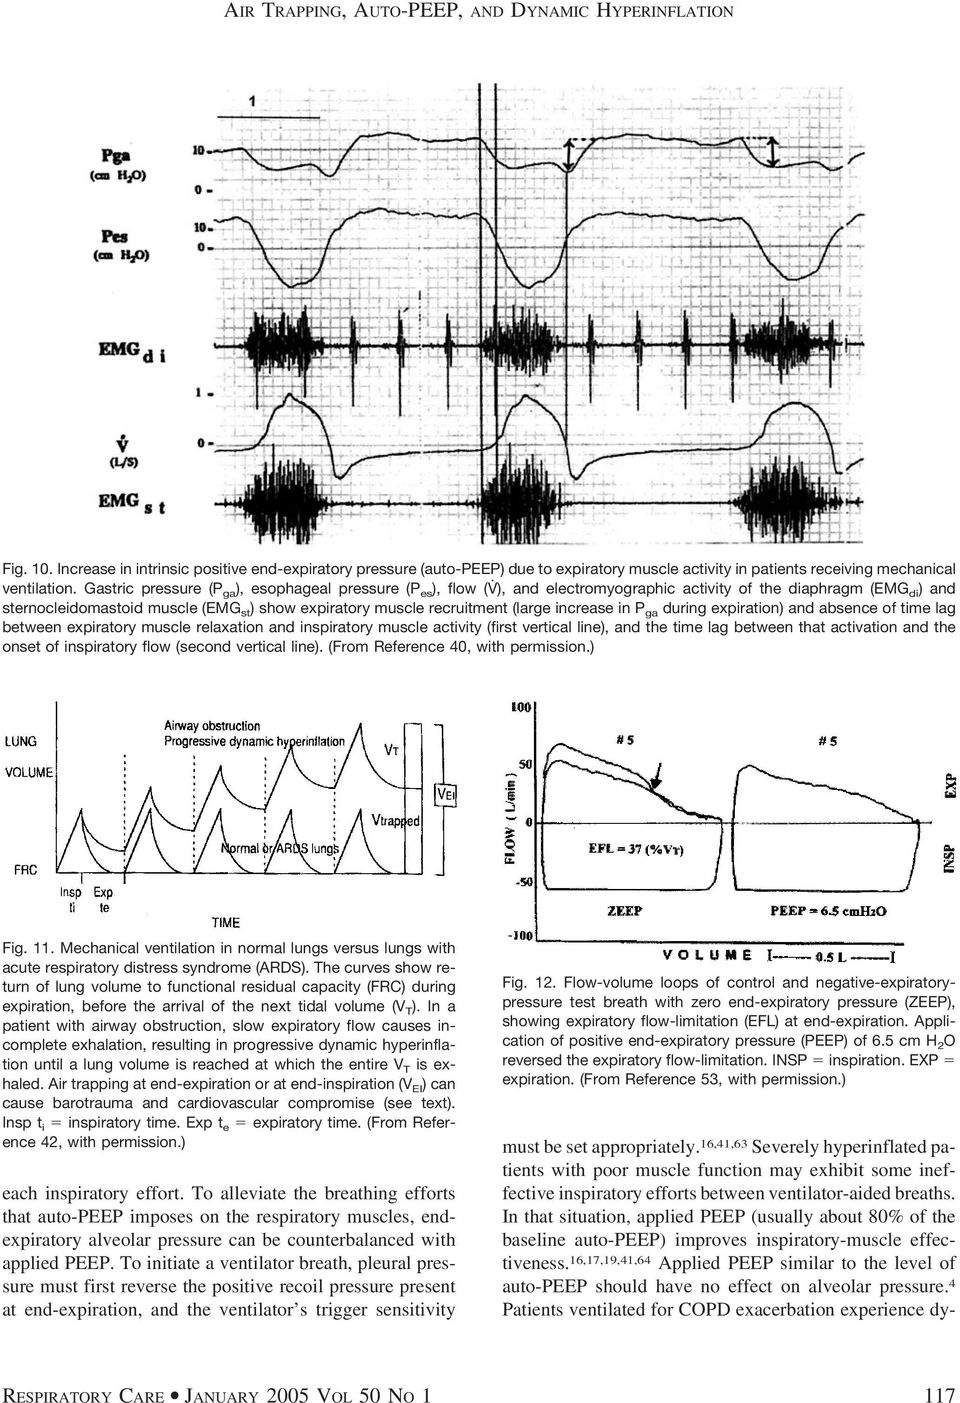 (large increase in P ga during expiration) and absence of time lag between expiratory muscle relaxation and inspiratory muscle activity (first vertical line), and the time lag between that activation